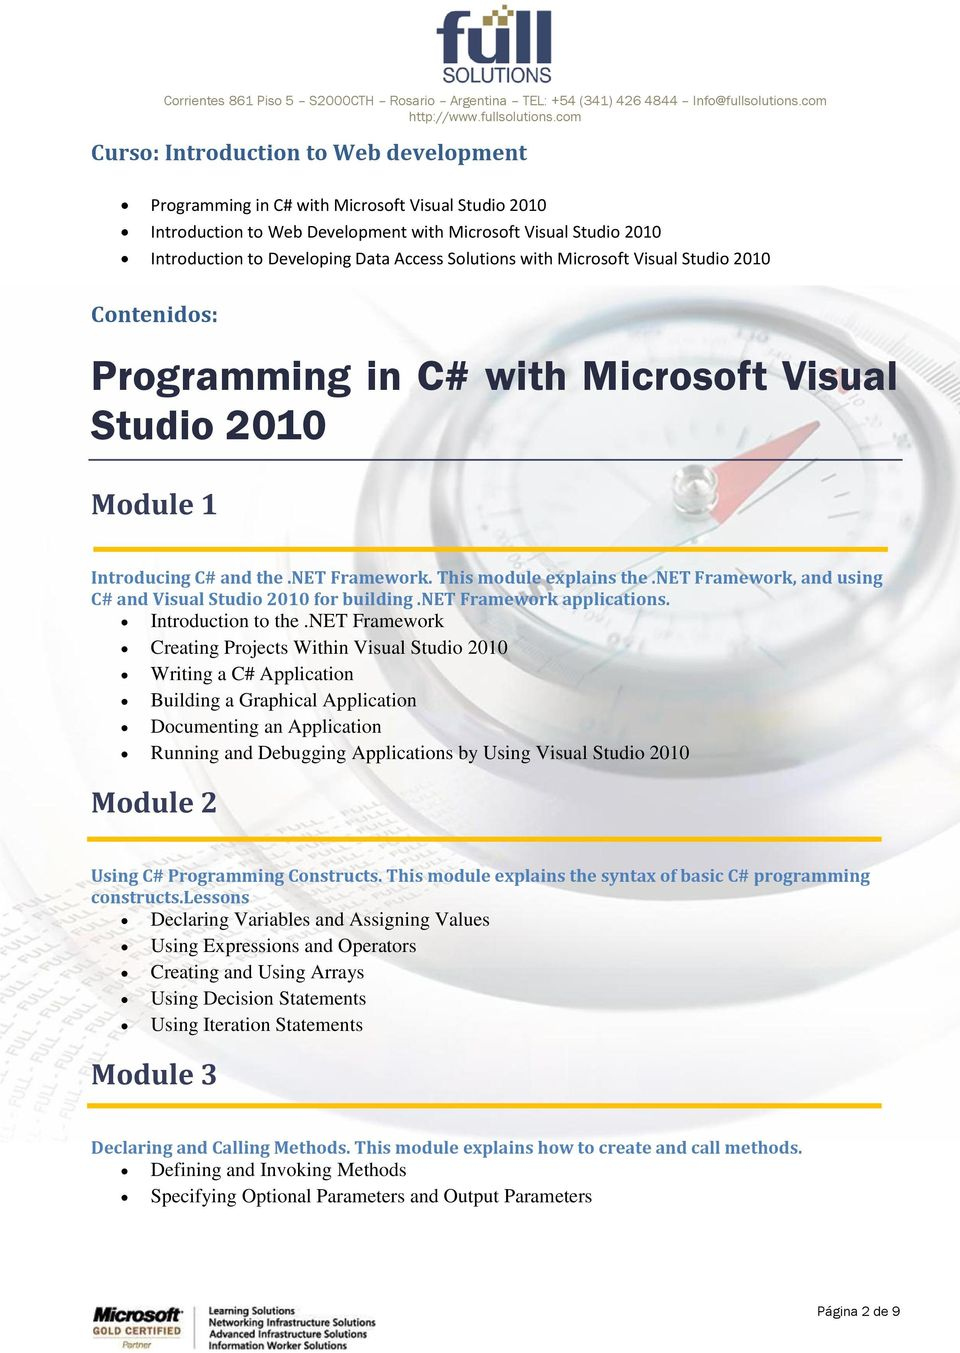 net Framework, and using C# and Visual Studio 2010 for building.net Framework applications. Introduction to the.